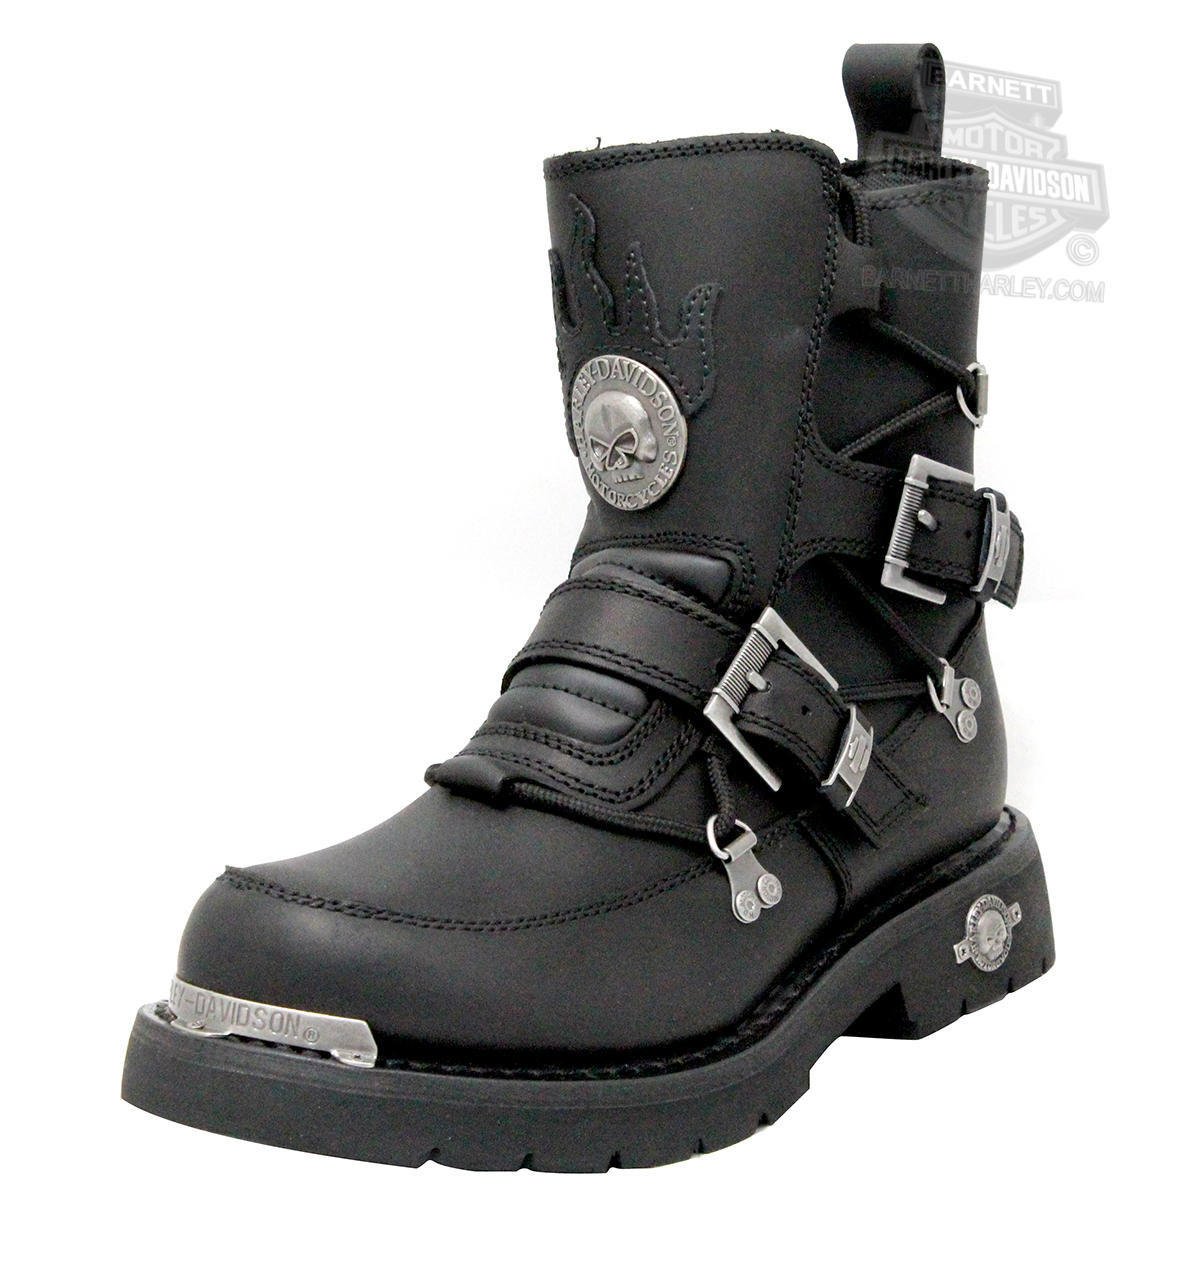 94167 - Harley-Davidson® Mens Distortion Black Mid Cut Riding Boot ...